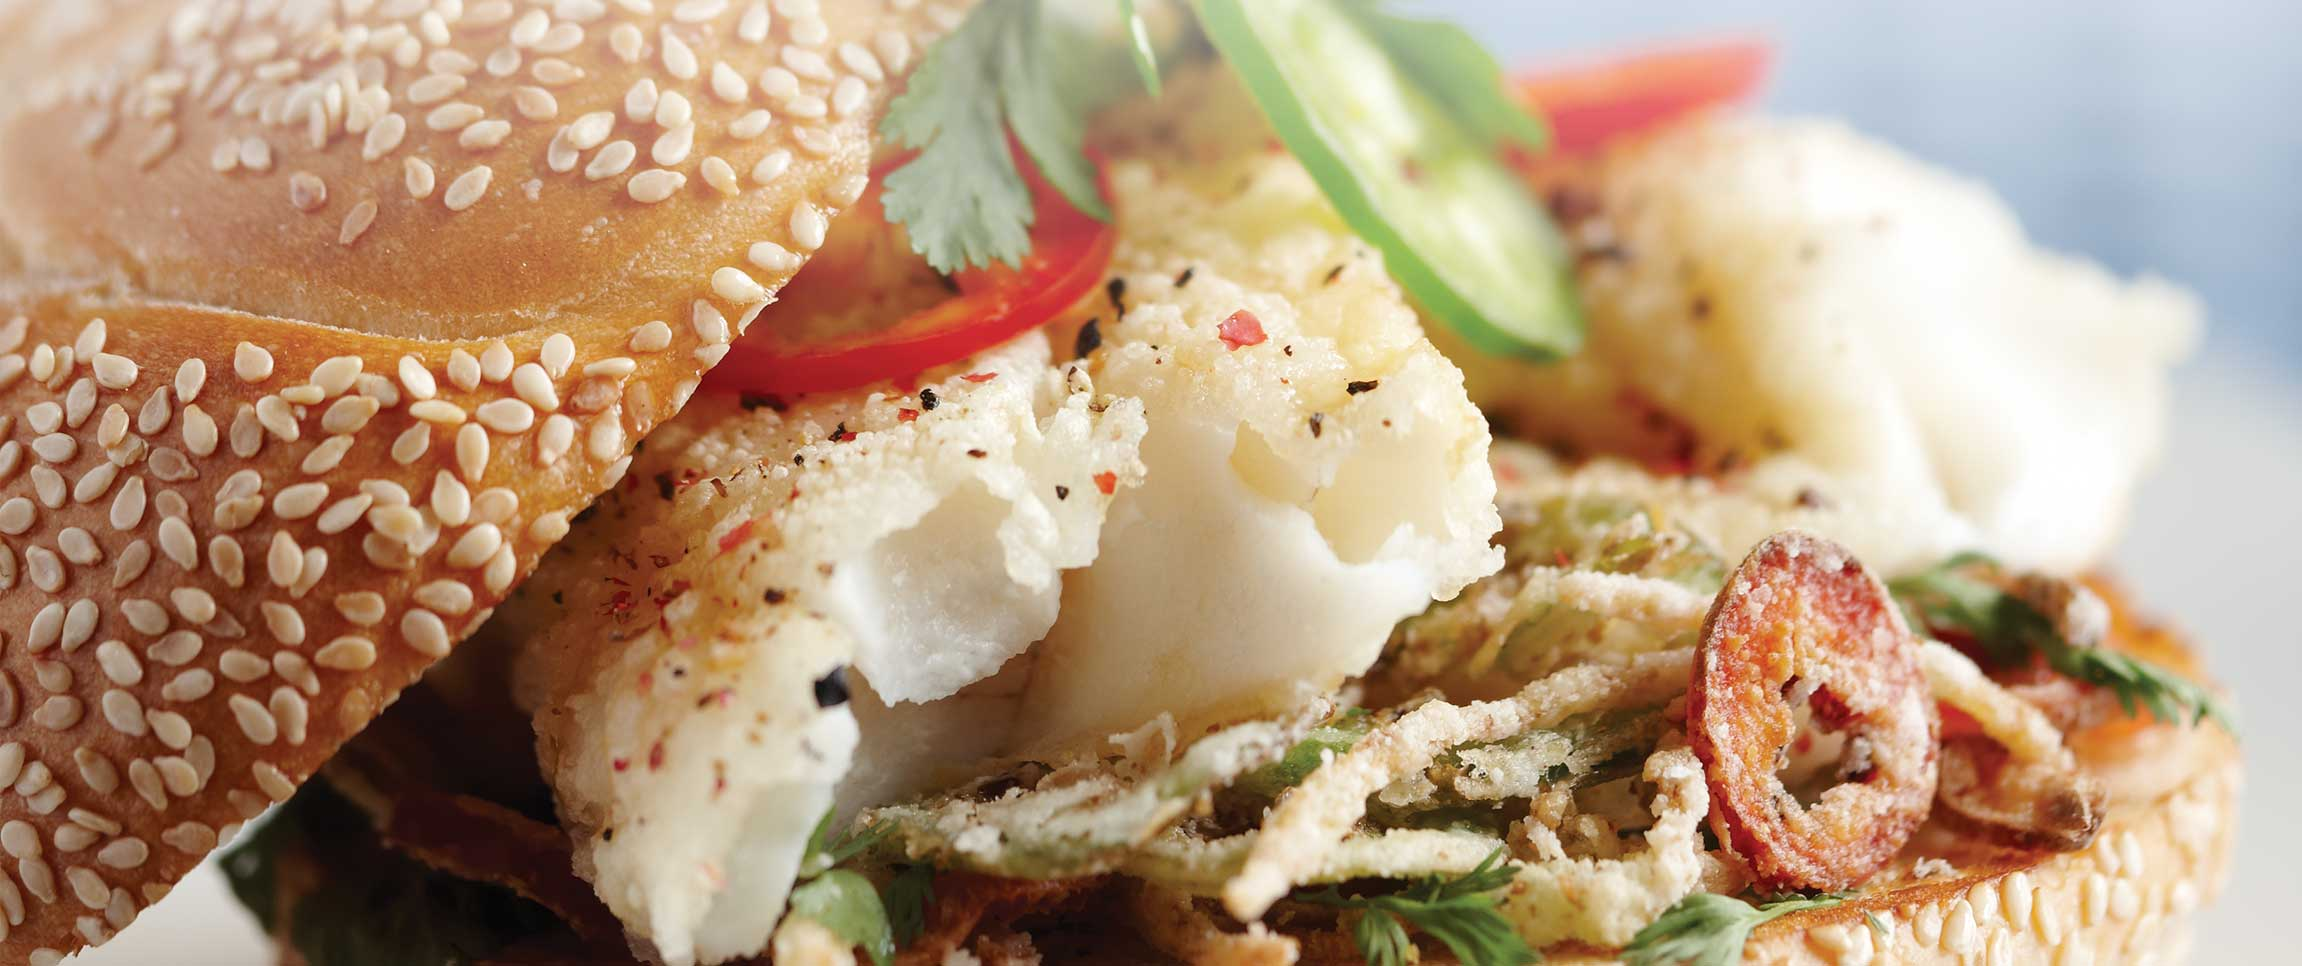 Salt and Pepper Alaska Cod Sandwich